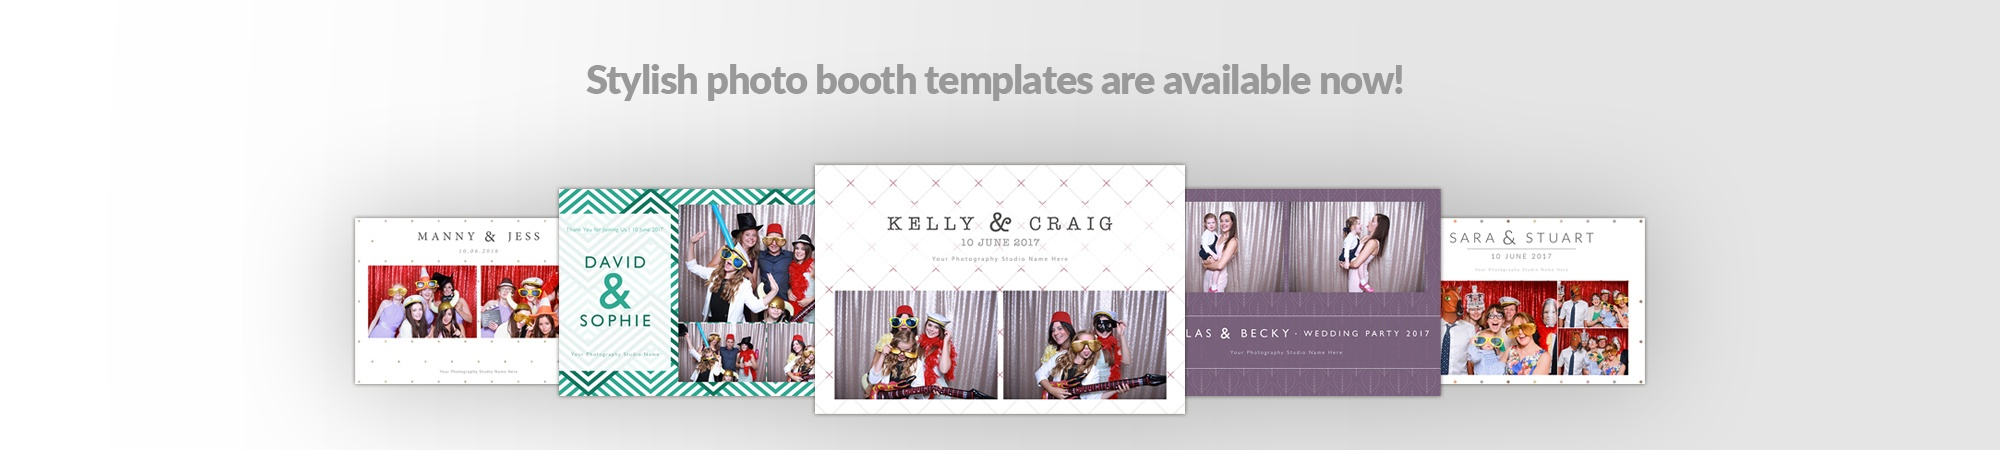 support template banner click image to view photo booth templates for sale